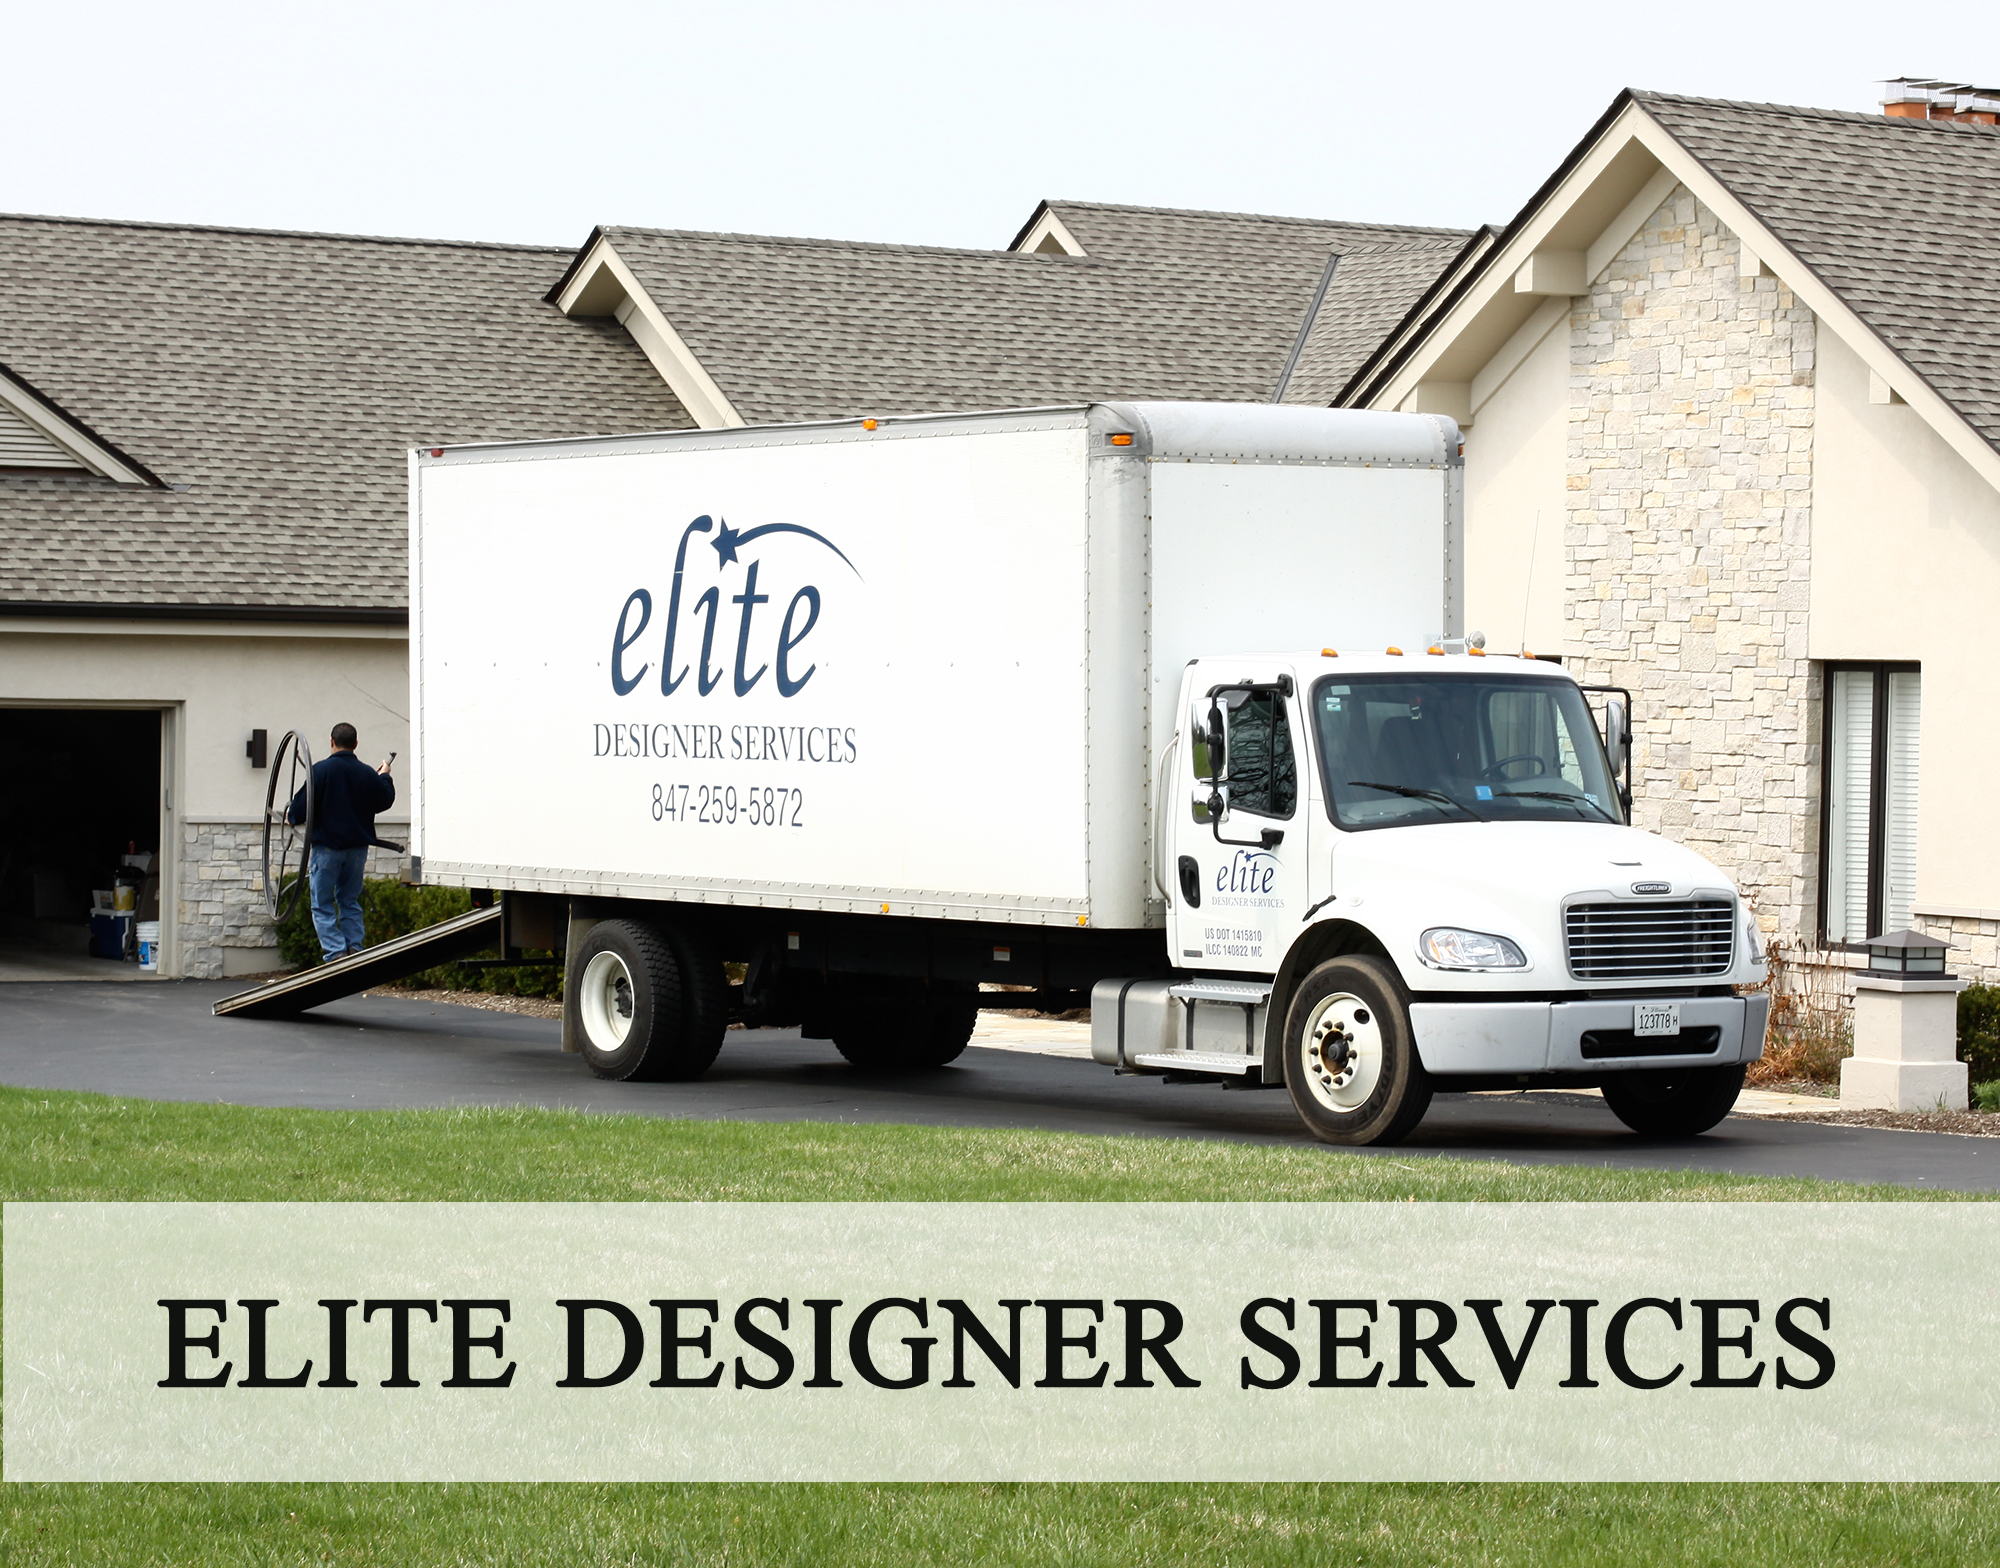 Elite Designer Services